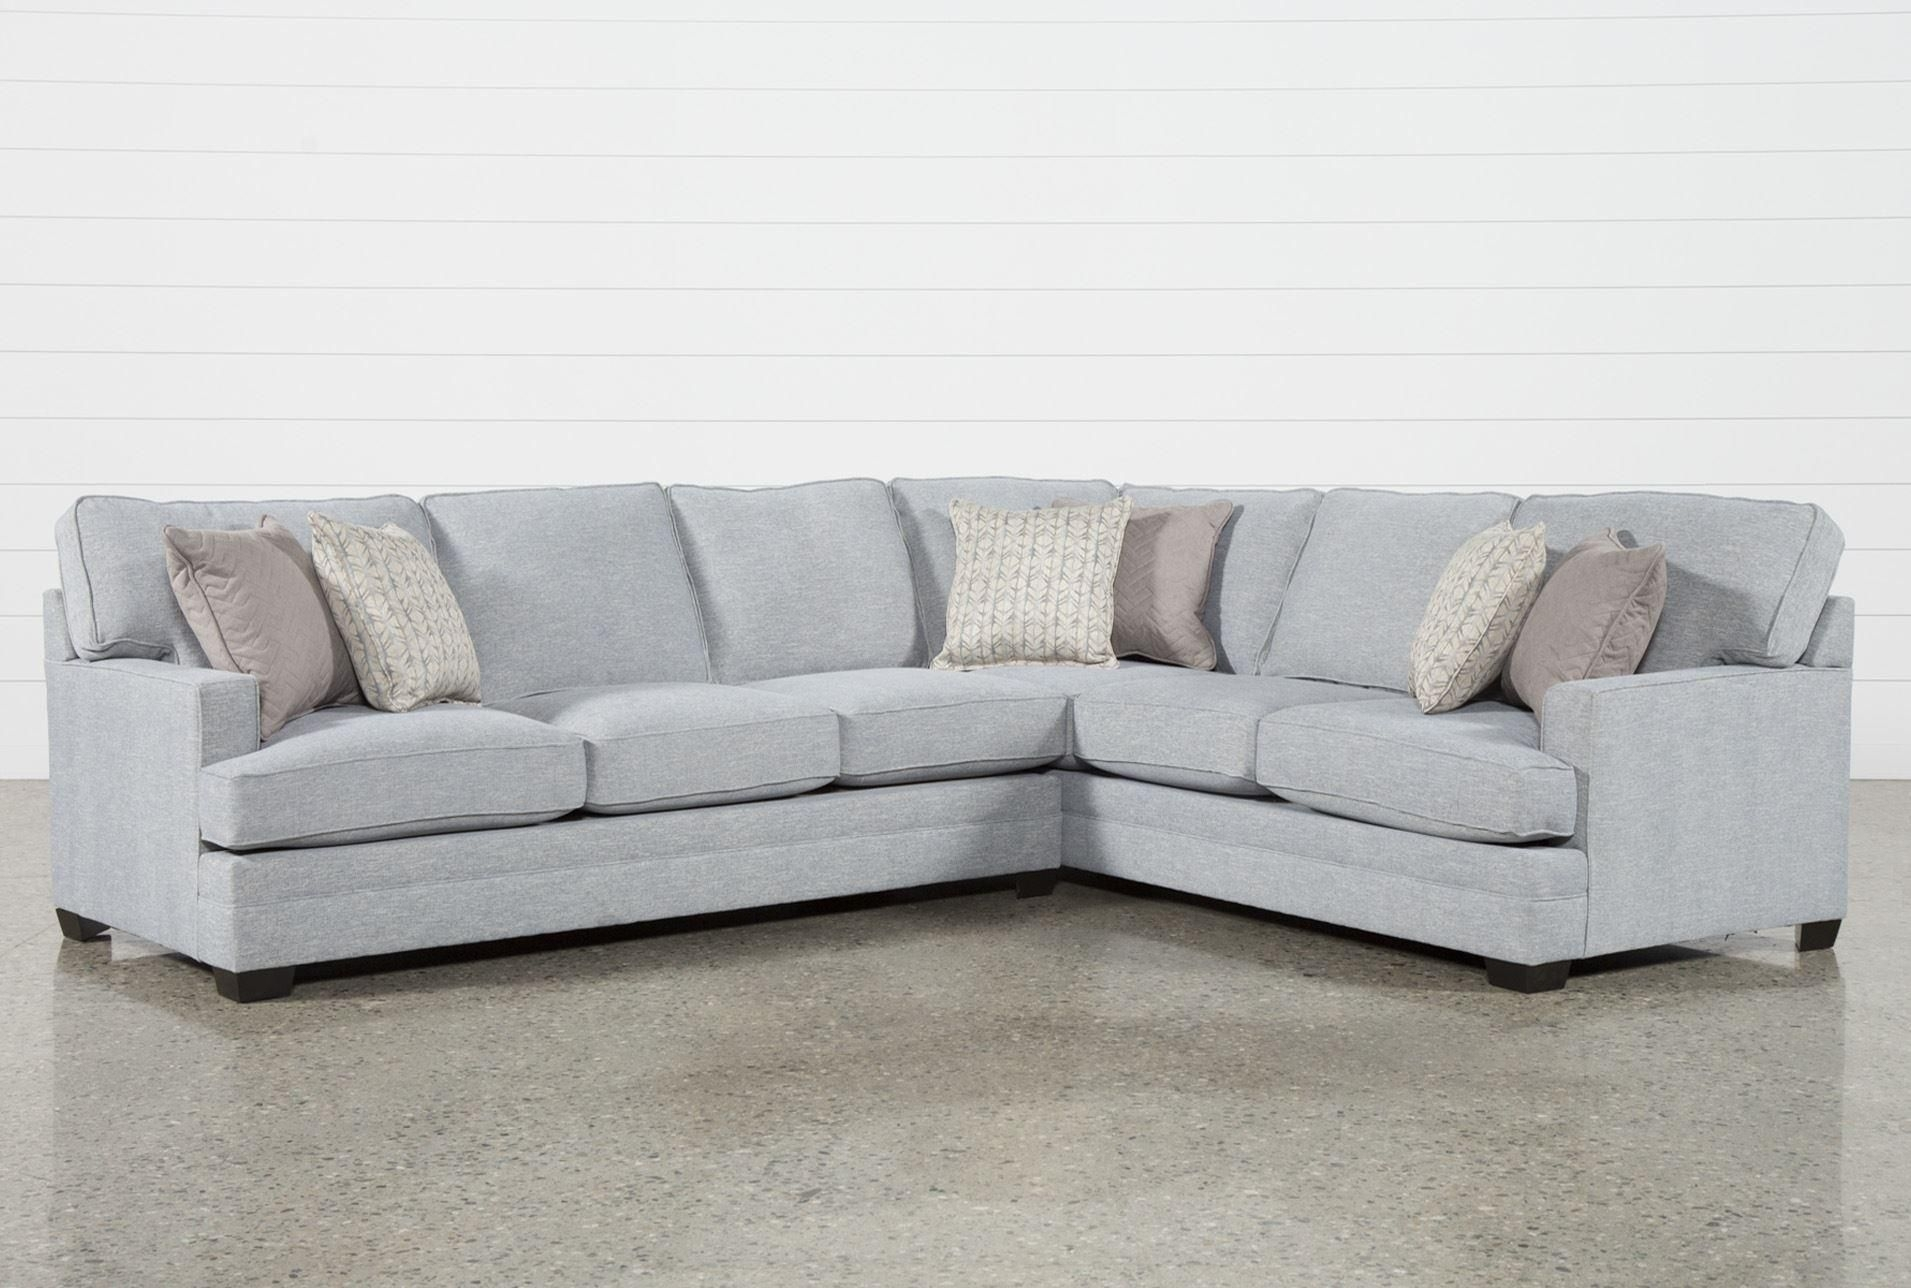 Josephine 2 Piece Sectional W/laf Sofa | For The Home | Pinterest regarding Mcdade Graphite 2 Piece Sectionals With Laf Chaise (Image 8 of 30)